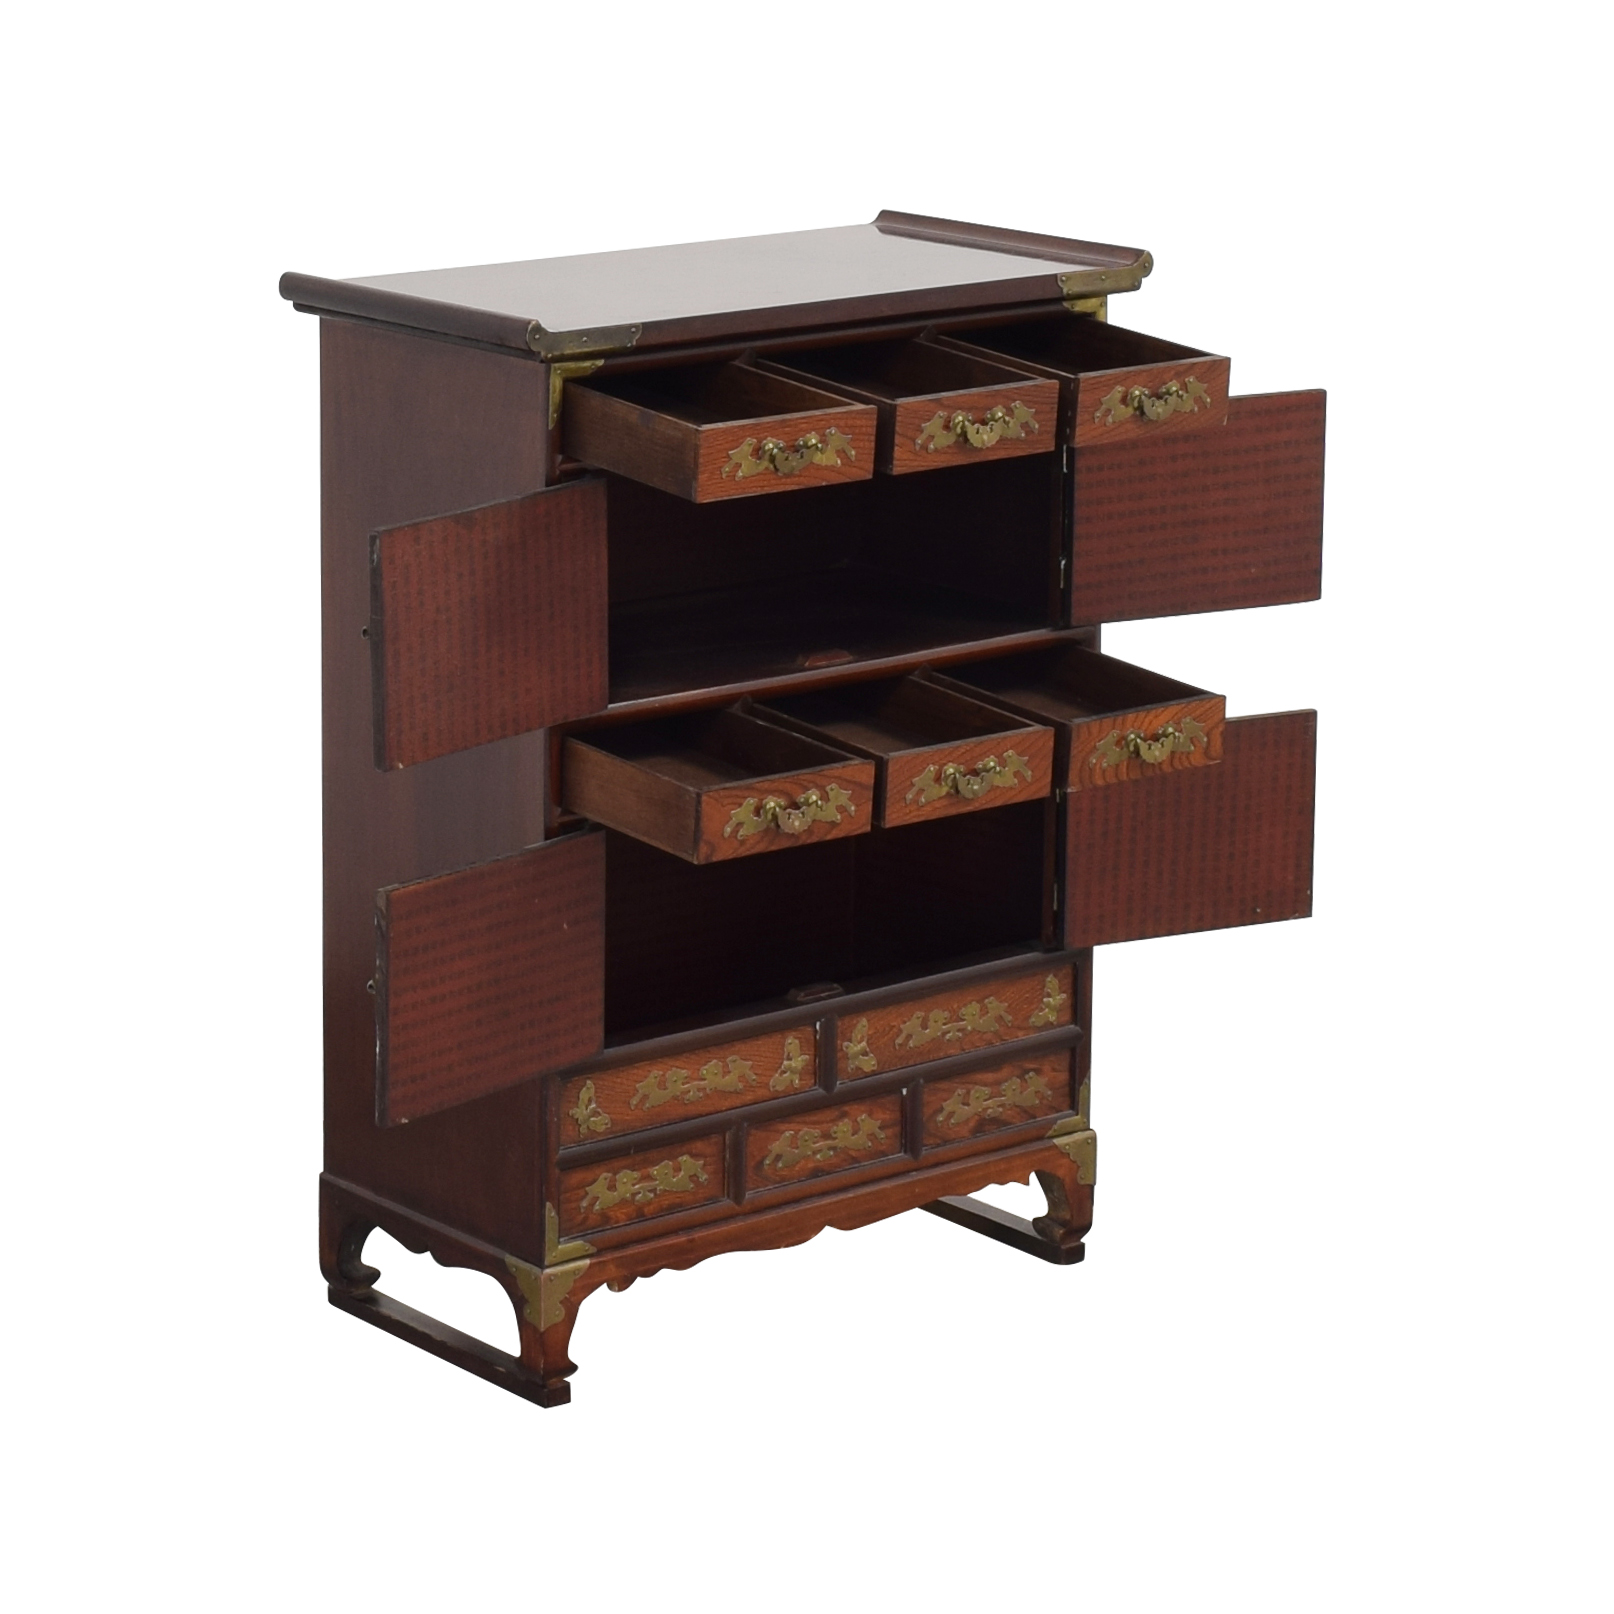 Chinese Apothecary Cabinet sale